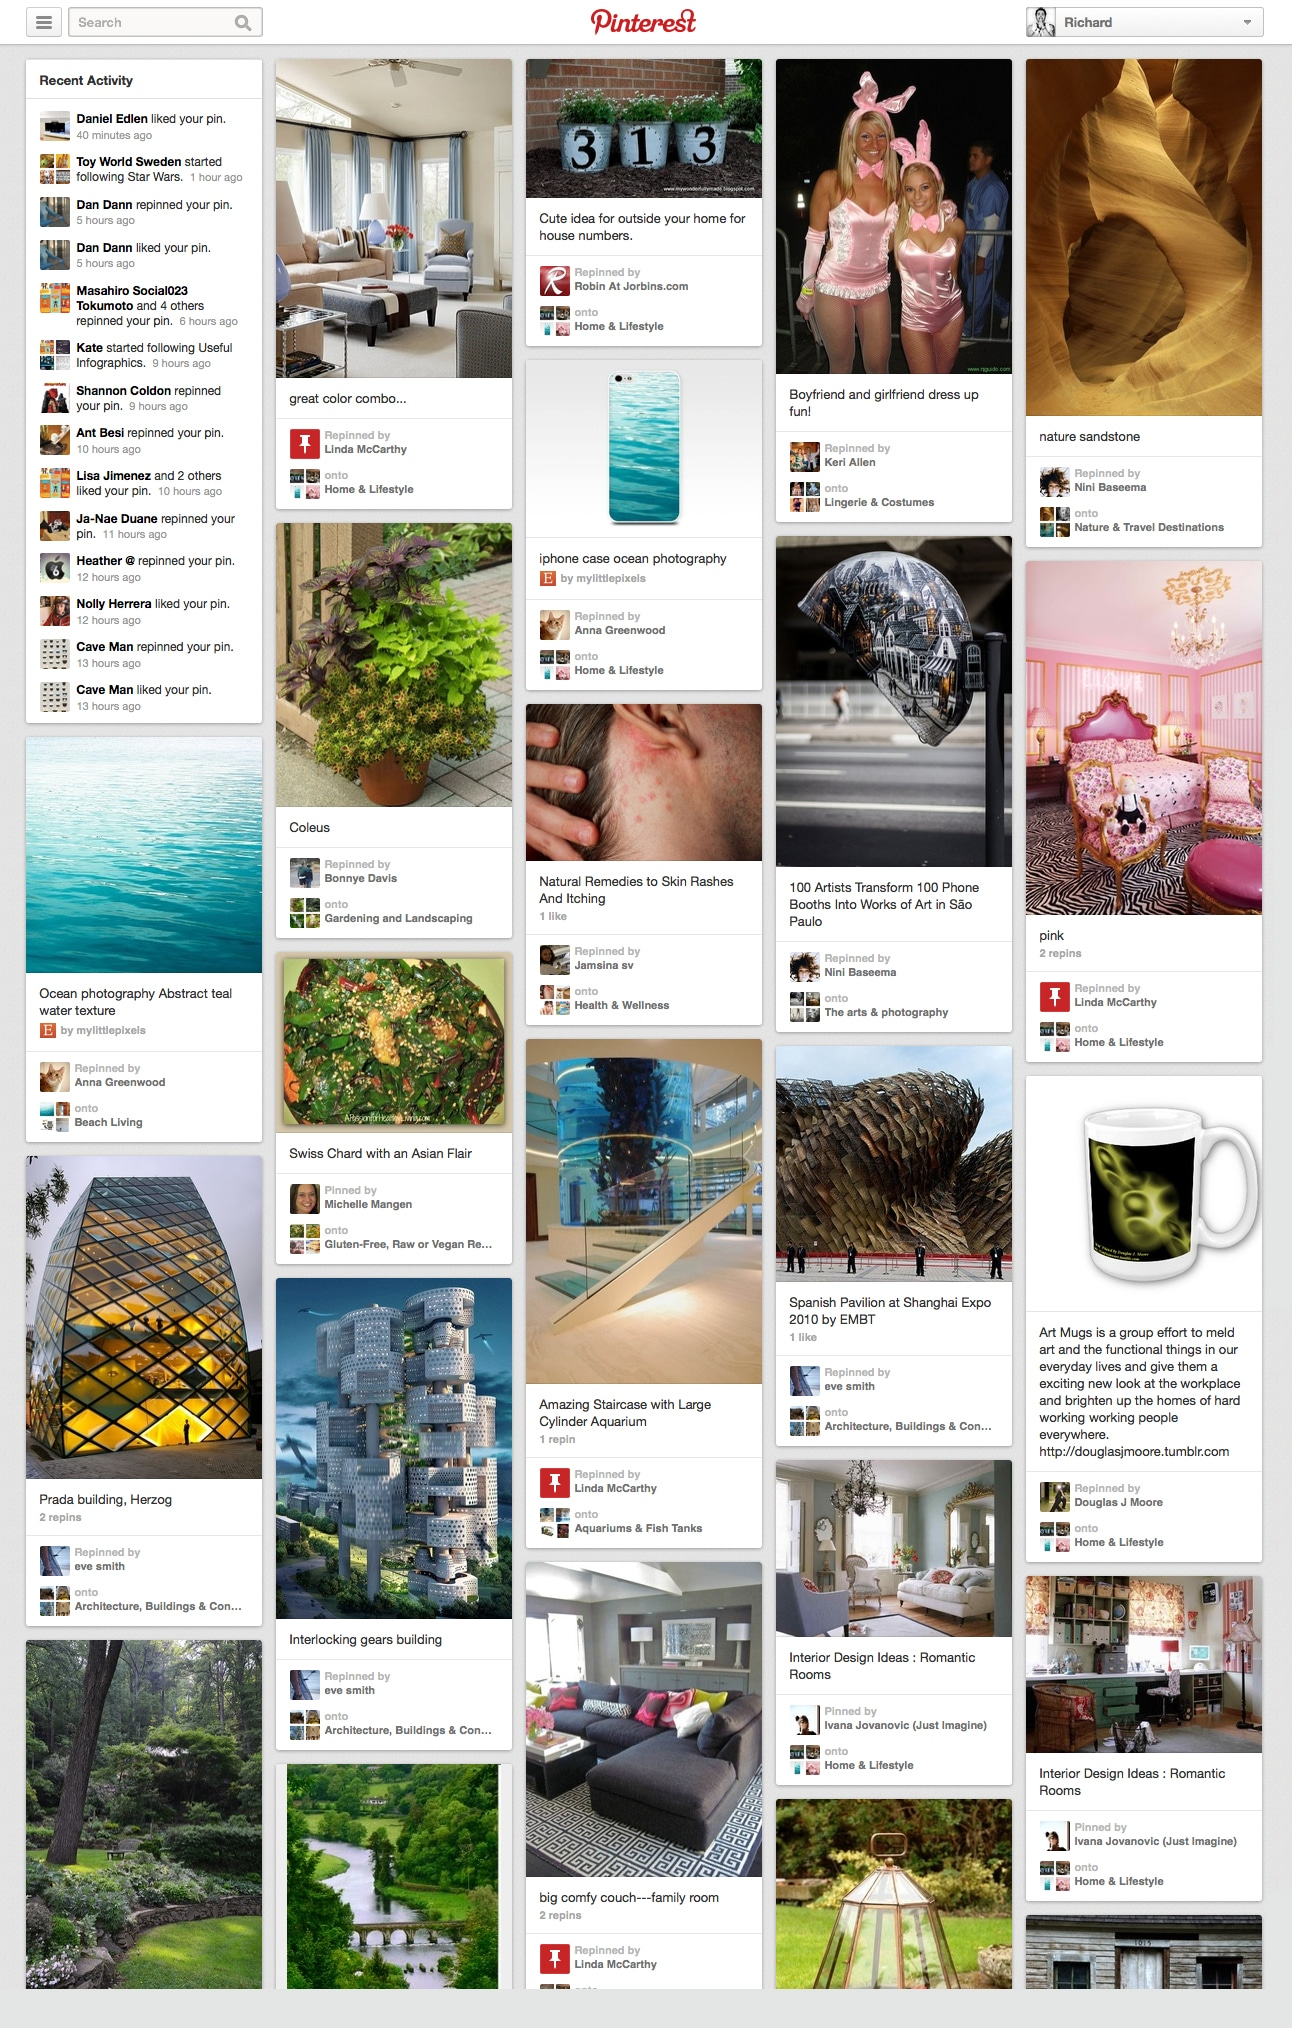 pinterest-pin-view-redesign